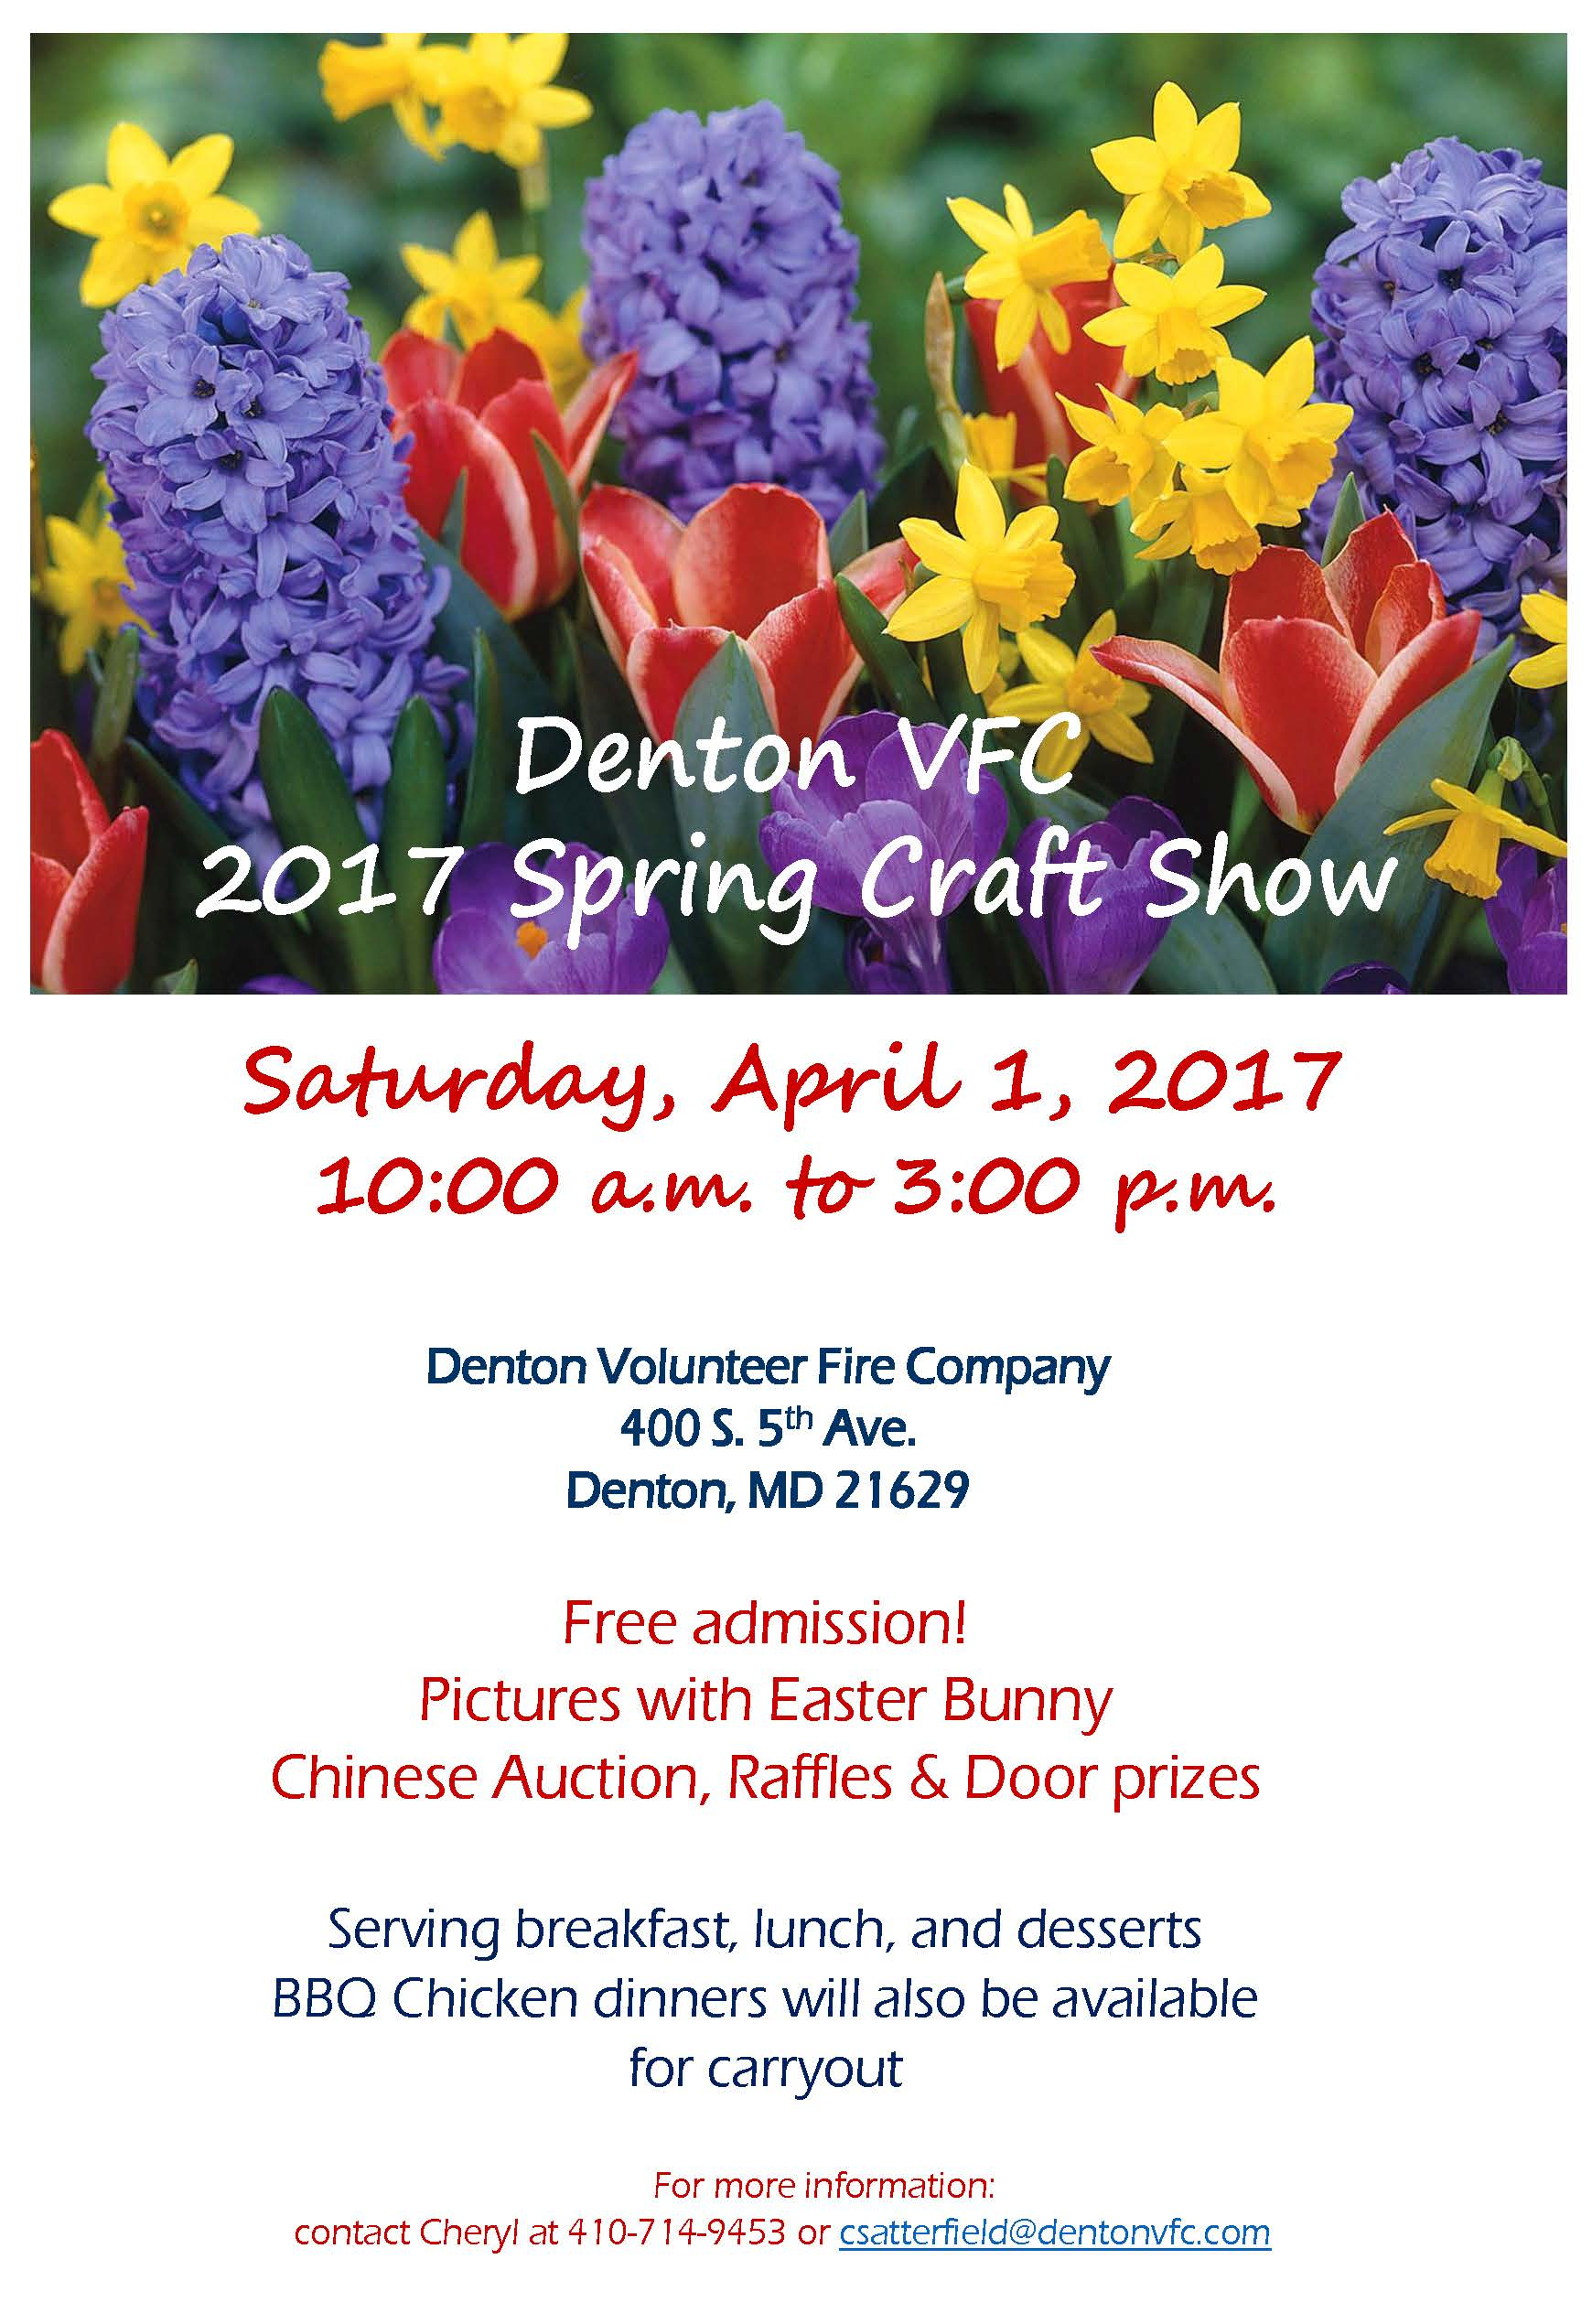 Denton volunteer fire spring craft show delmarvalife for Vendors wanted for craft shows 2017